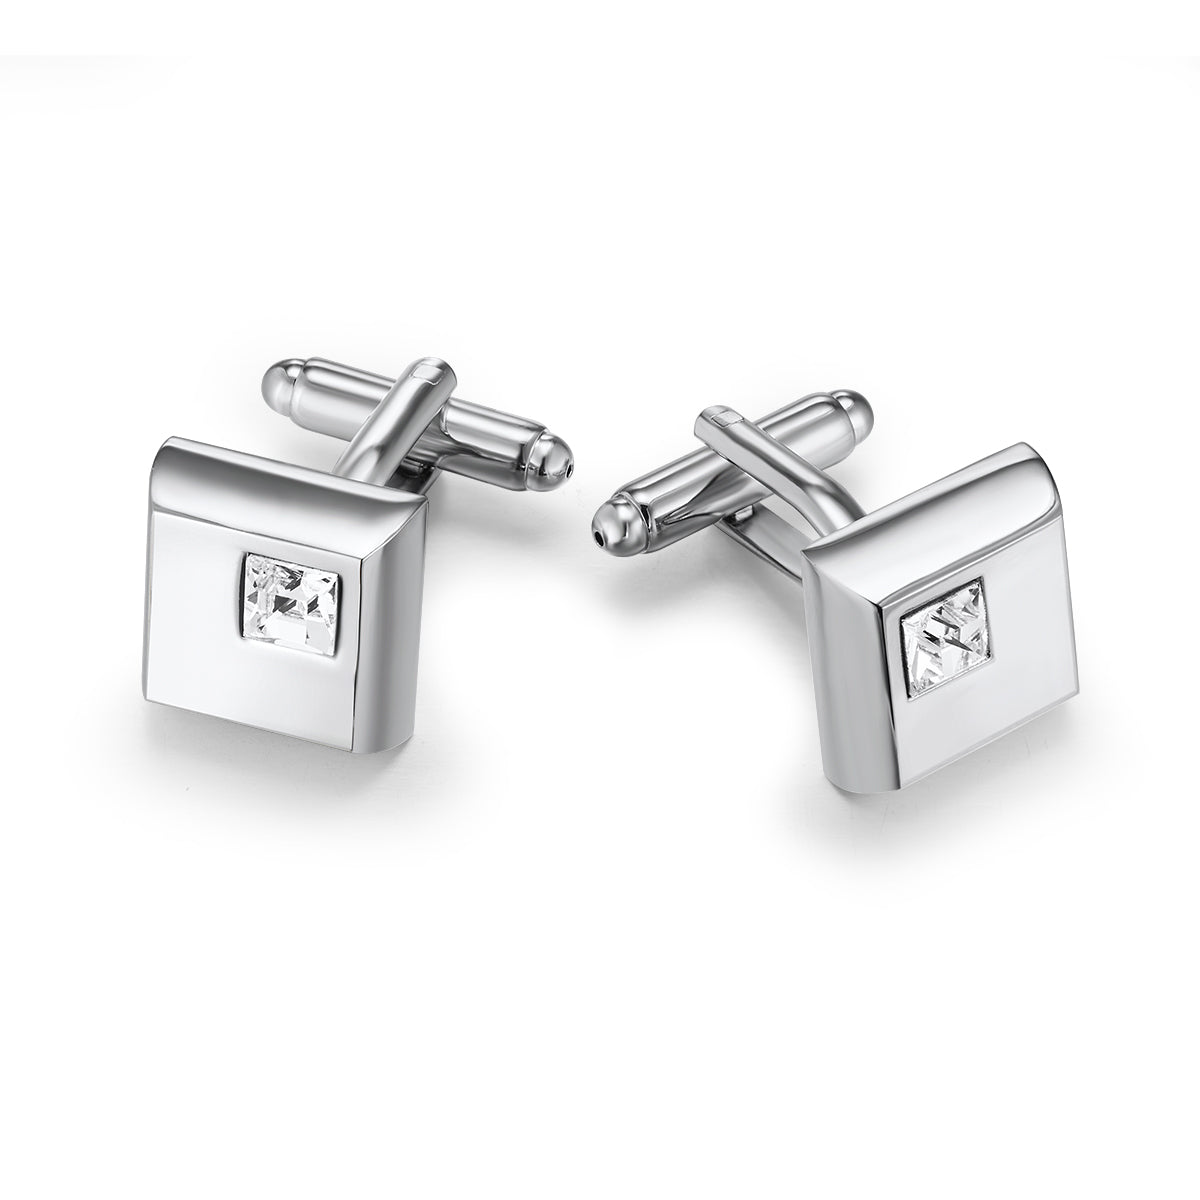 16b6c13437e5 Squared Cufflinks Embellished with Crystals from Swarovski - J GOODIN